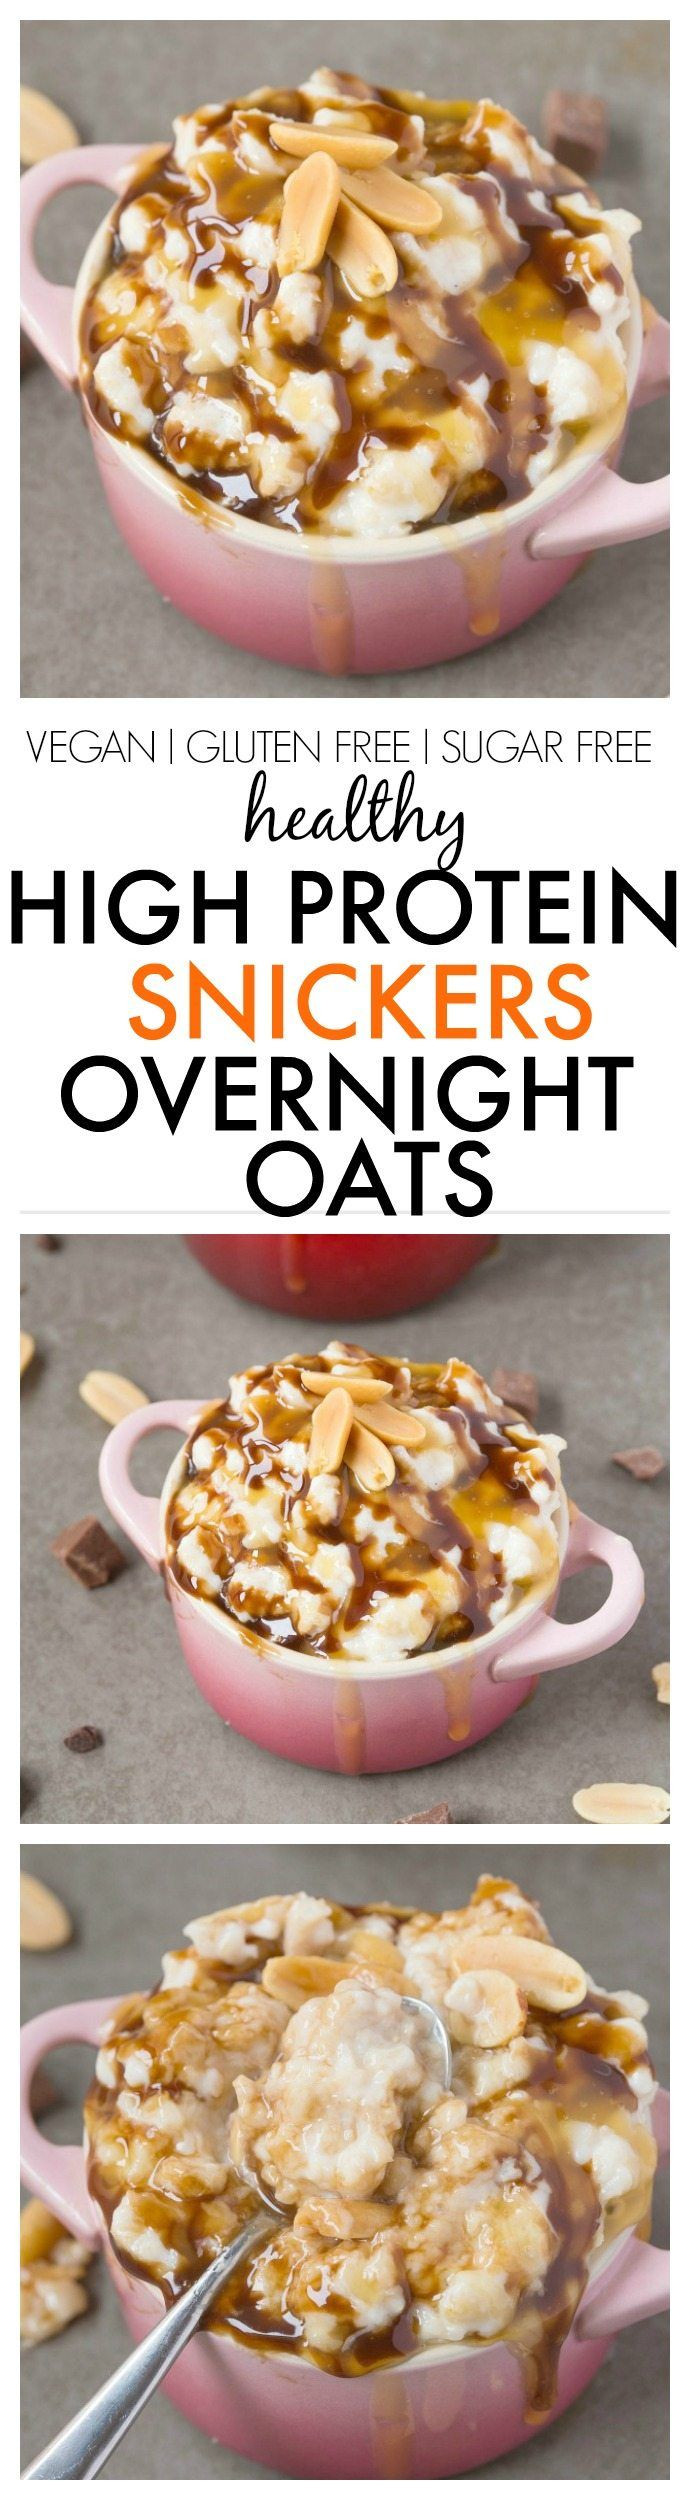 Healthy High Protein Vegetarian Recipes  Healthy High Protein Snickers Overnight Oats Easy